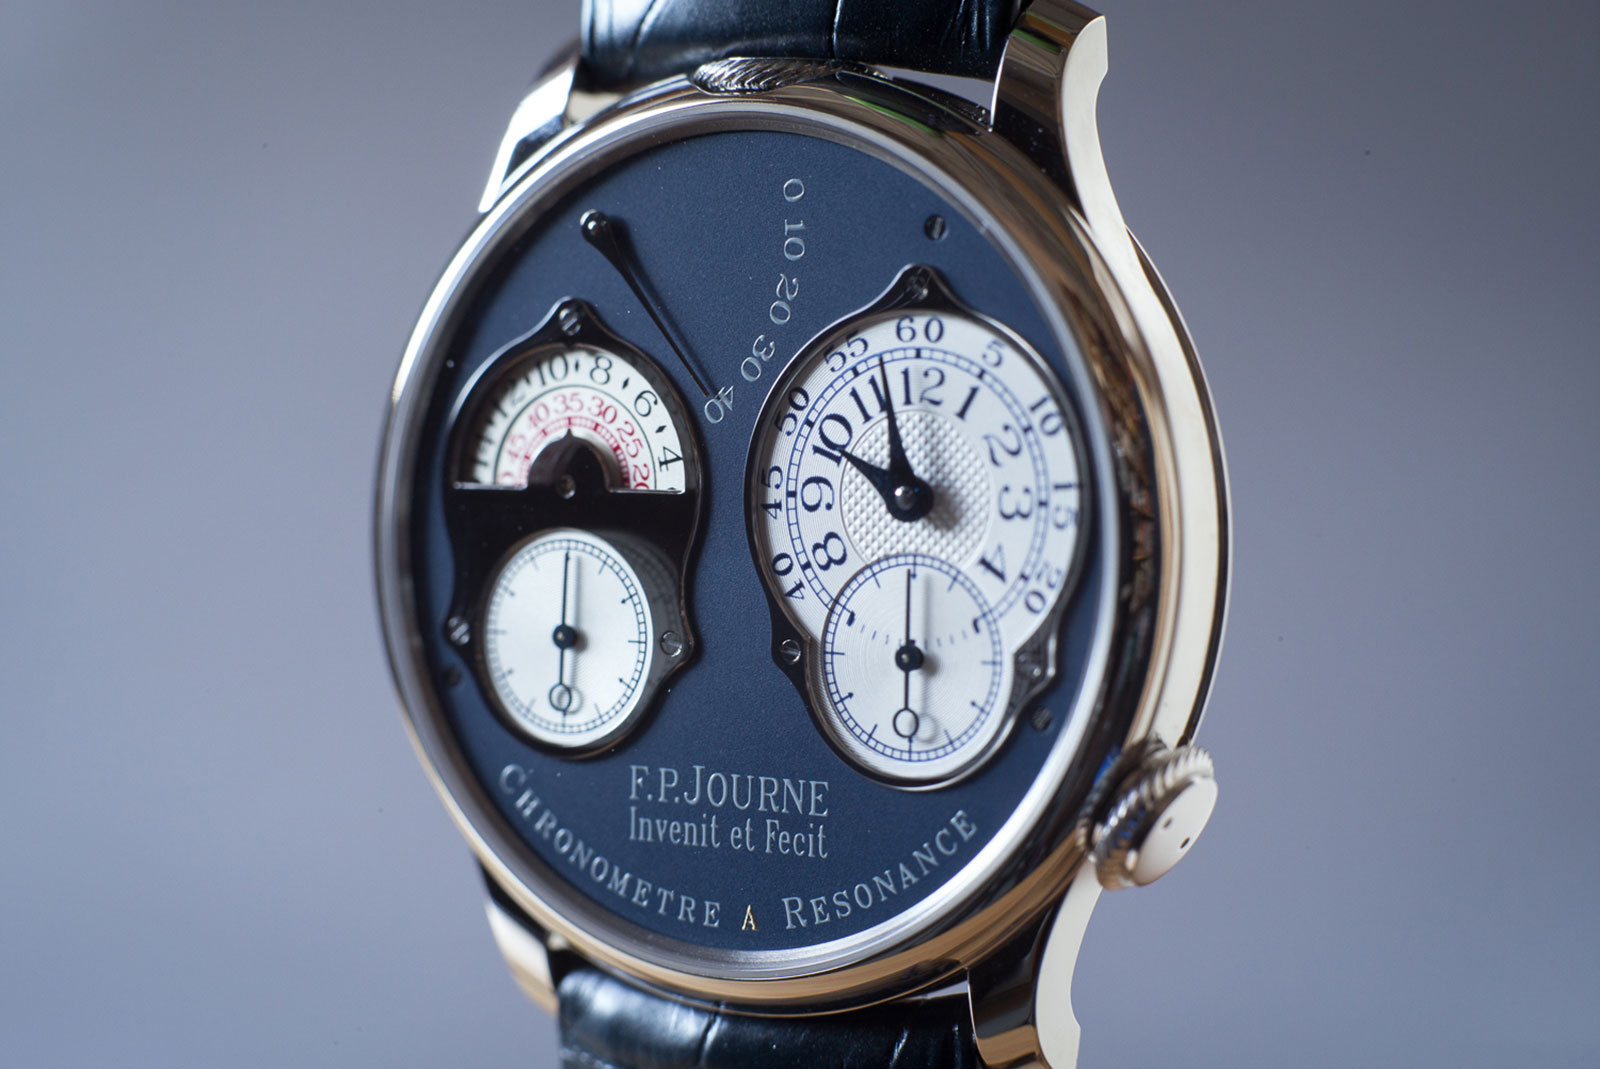 FP Journe Resonance The Armoury Mark Cho 3